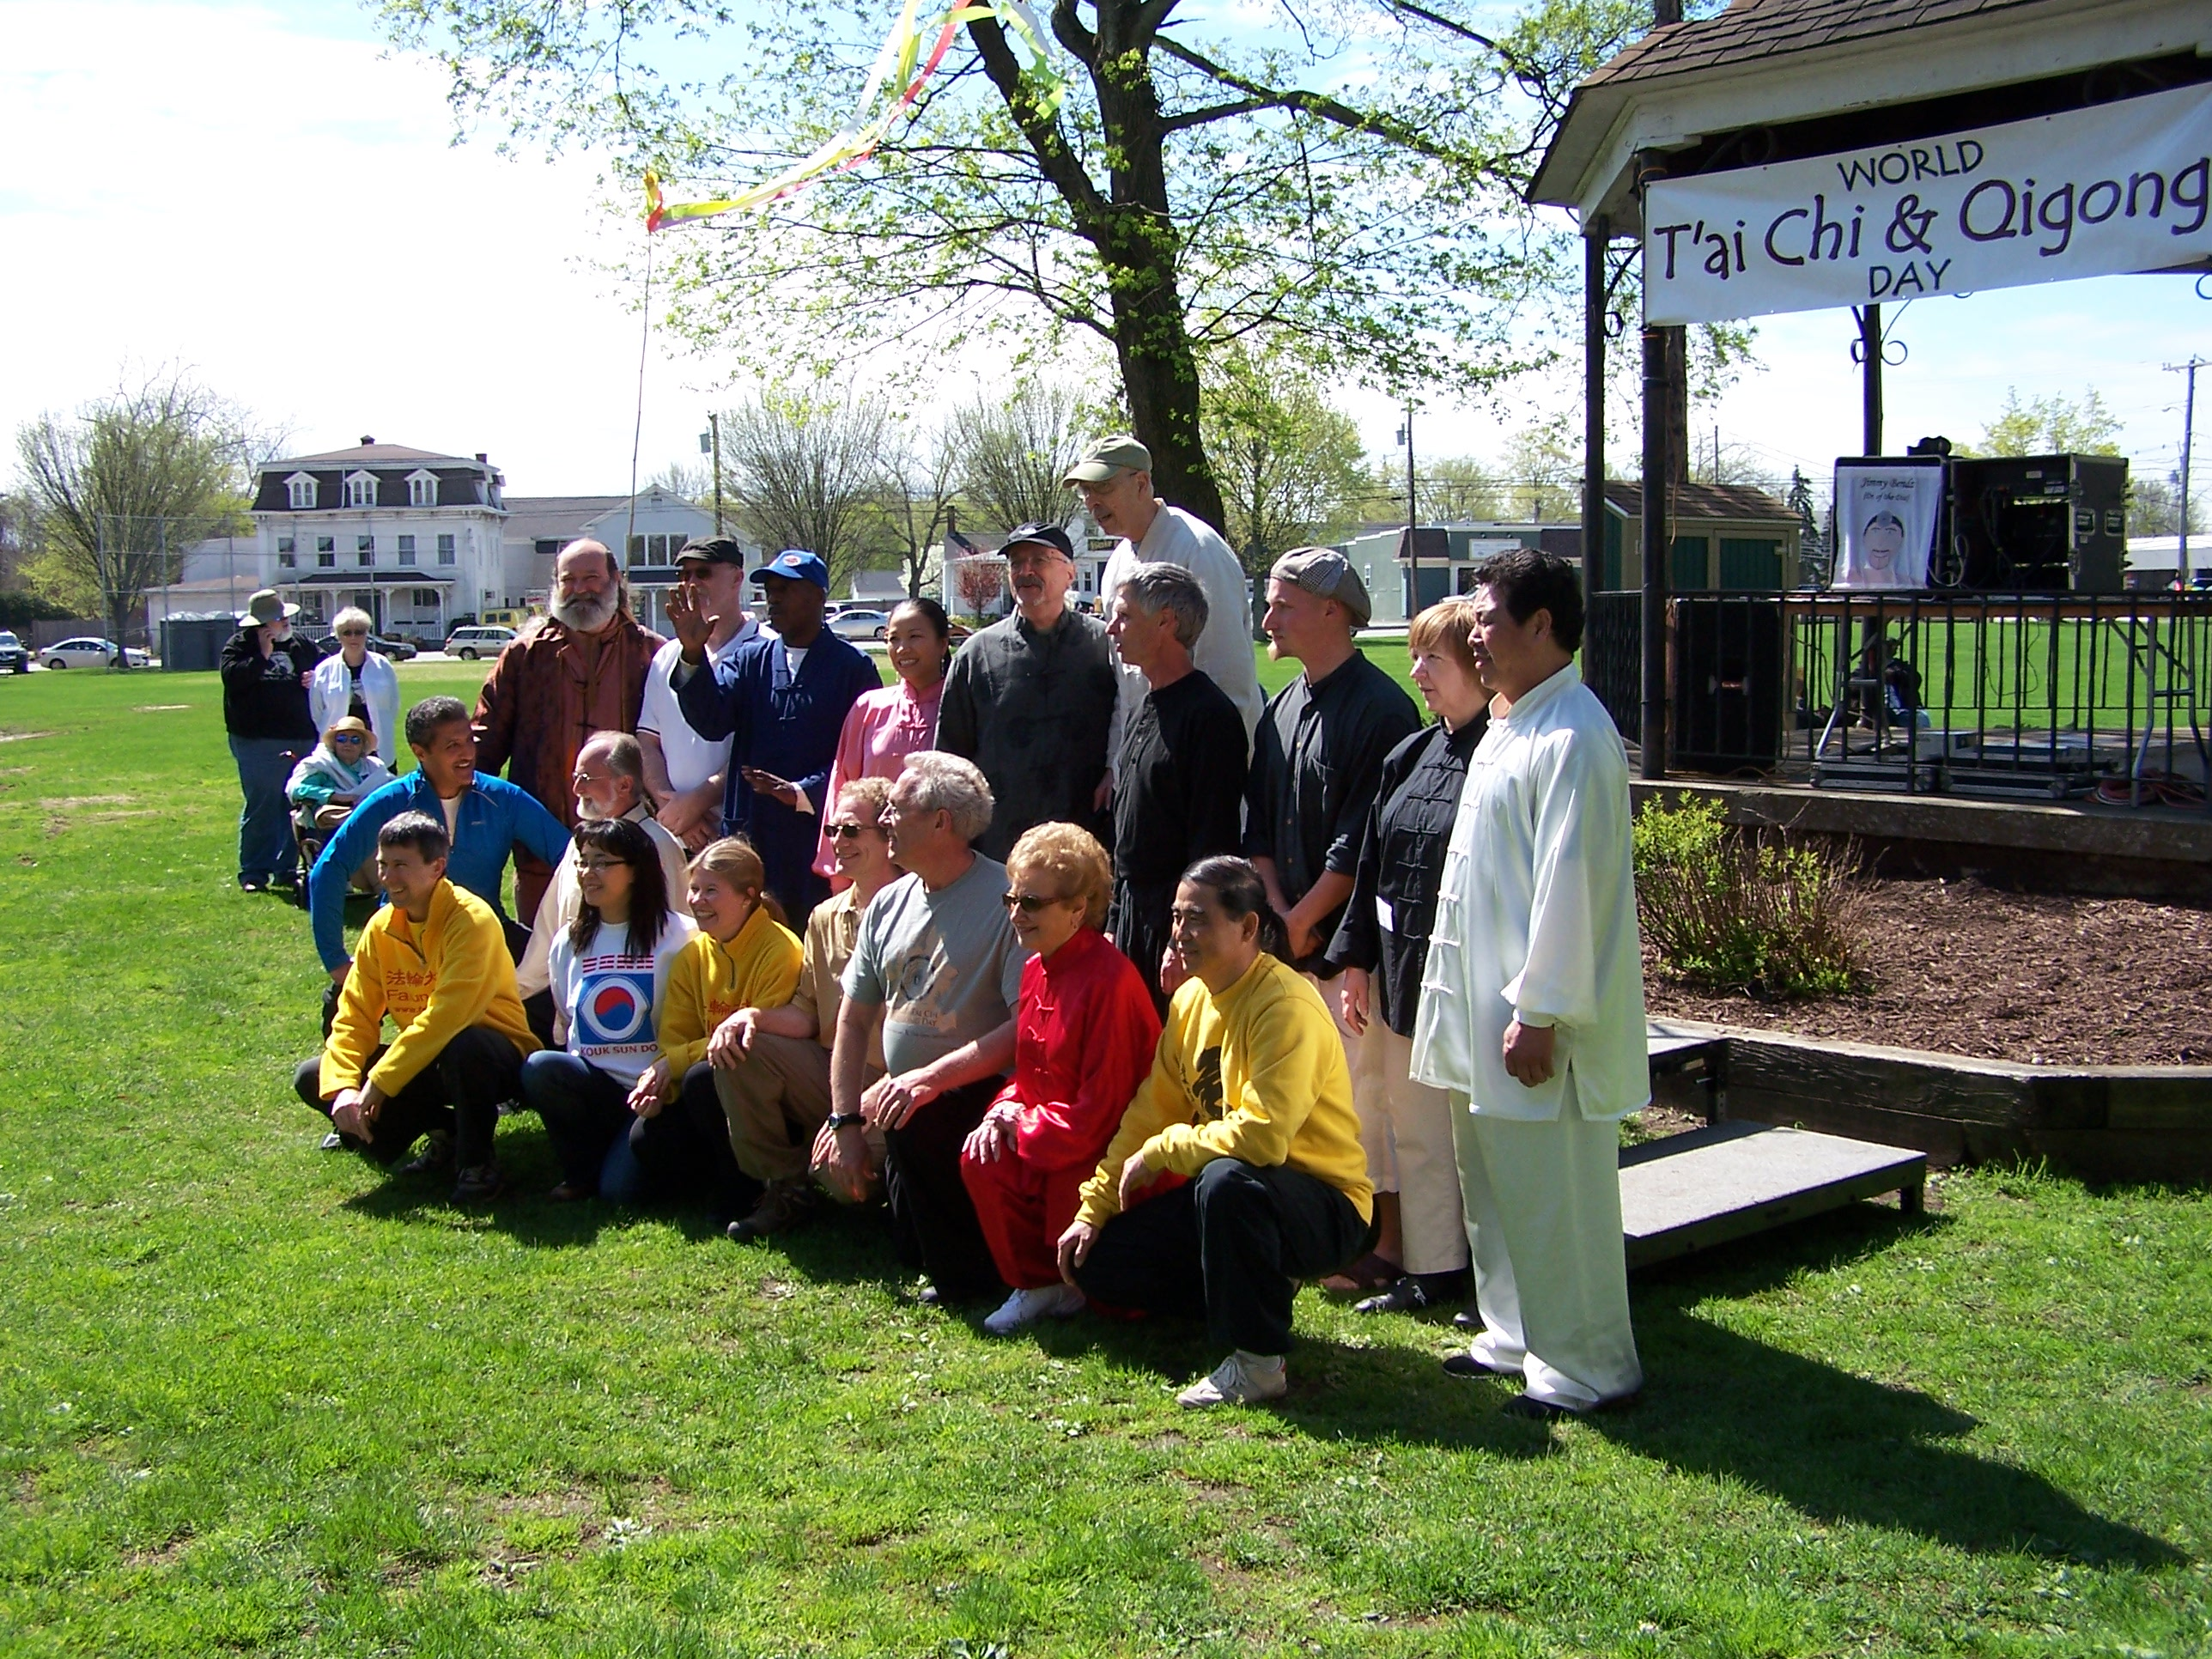 A Photo Opportunity for the teachers contributing to the day's classes and workshops